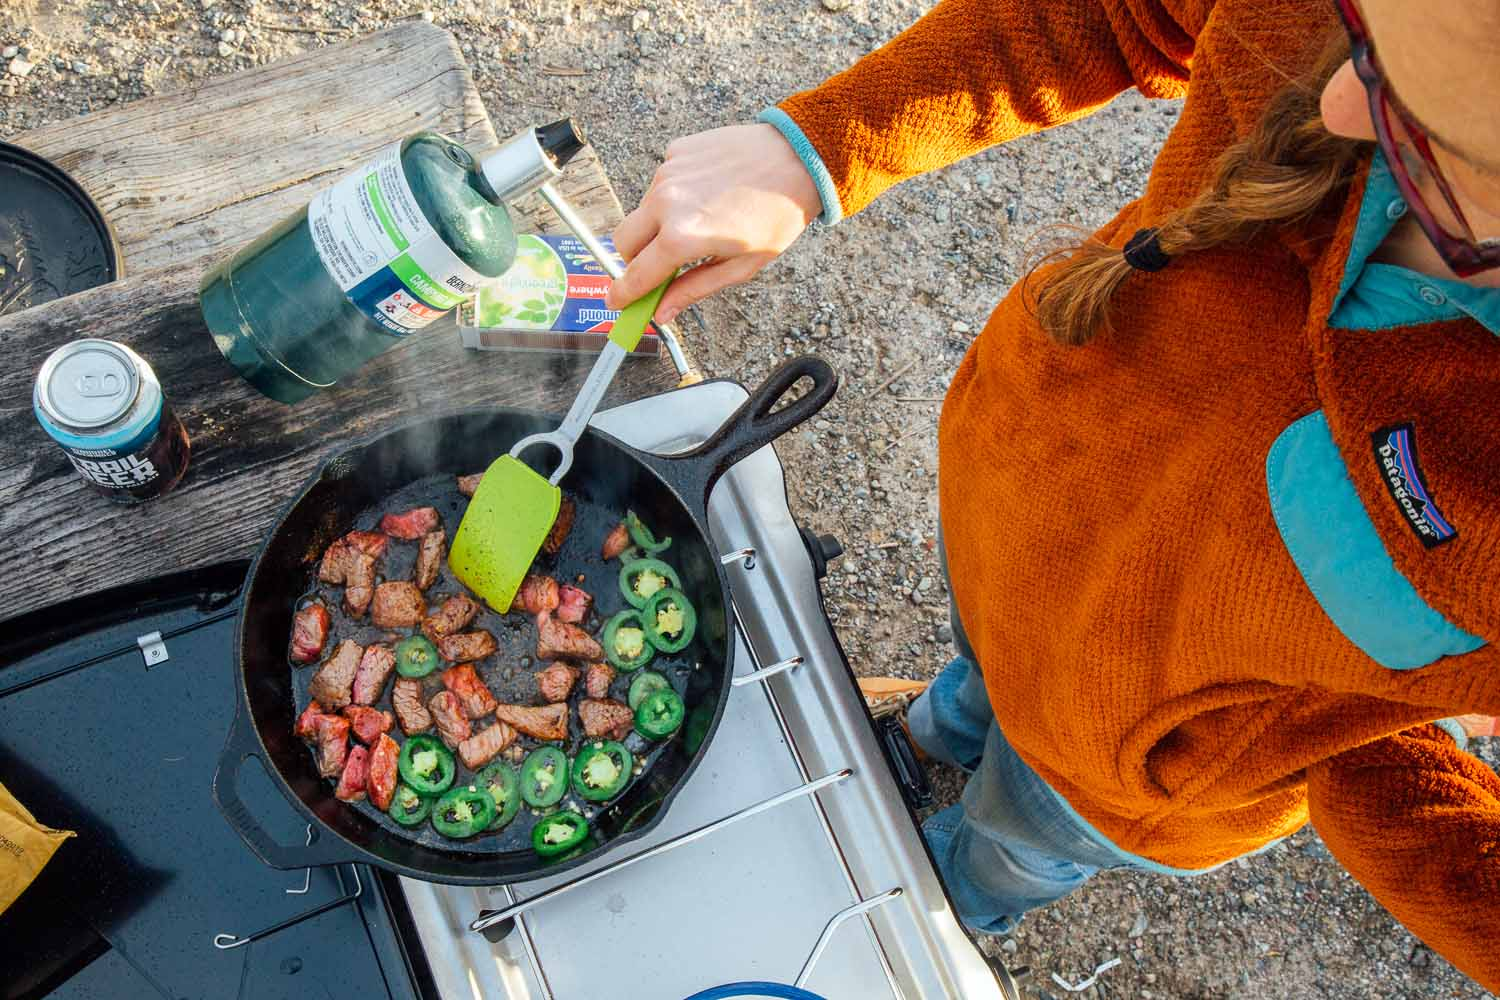 Overhead shot of a woman cooking steak and jalapeños in a cast iron skillet over a camping stove.